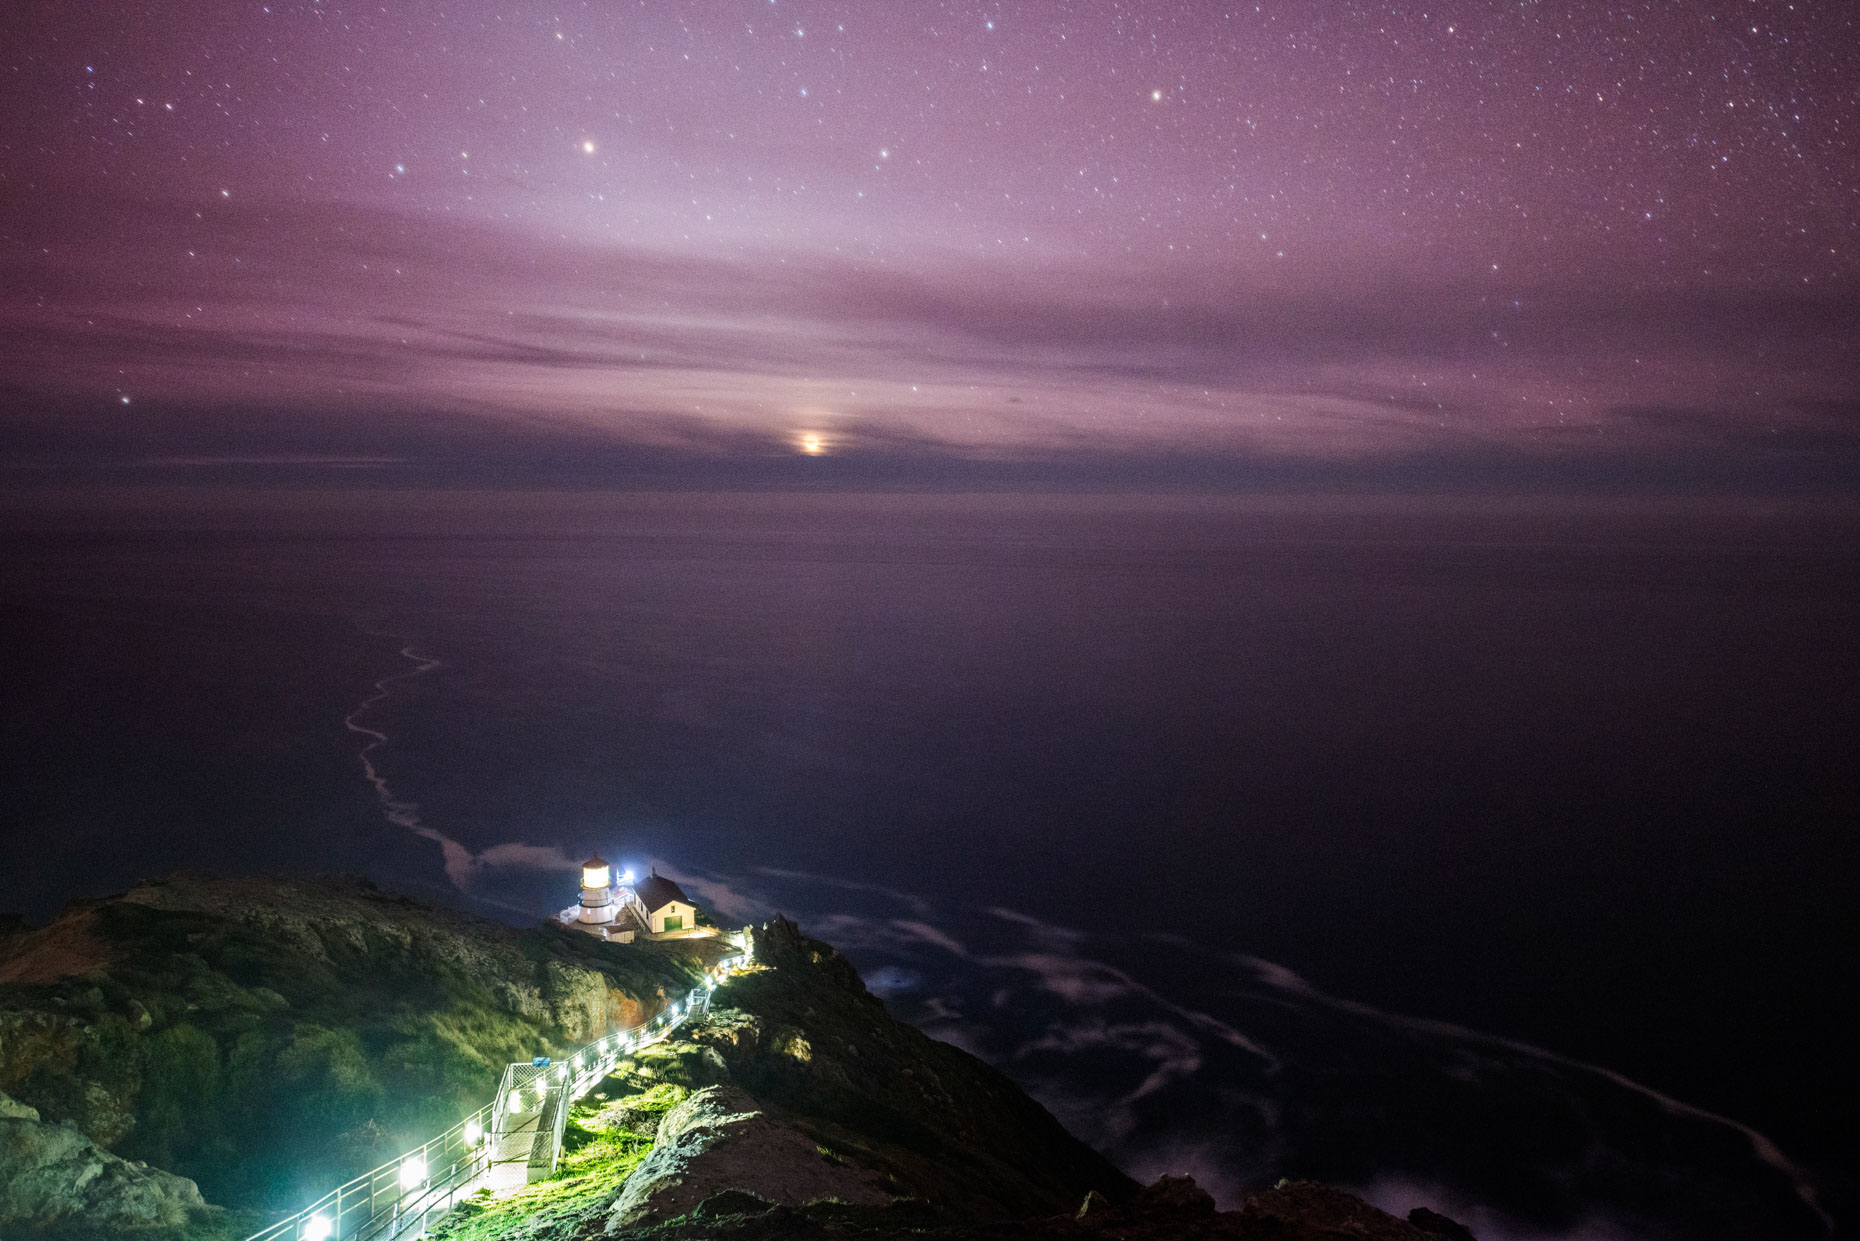 Point Reyes Lighthouse at Night - Point Reyes National Seashore, California